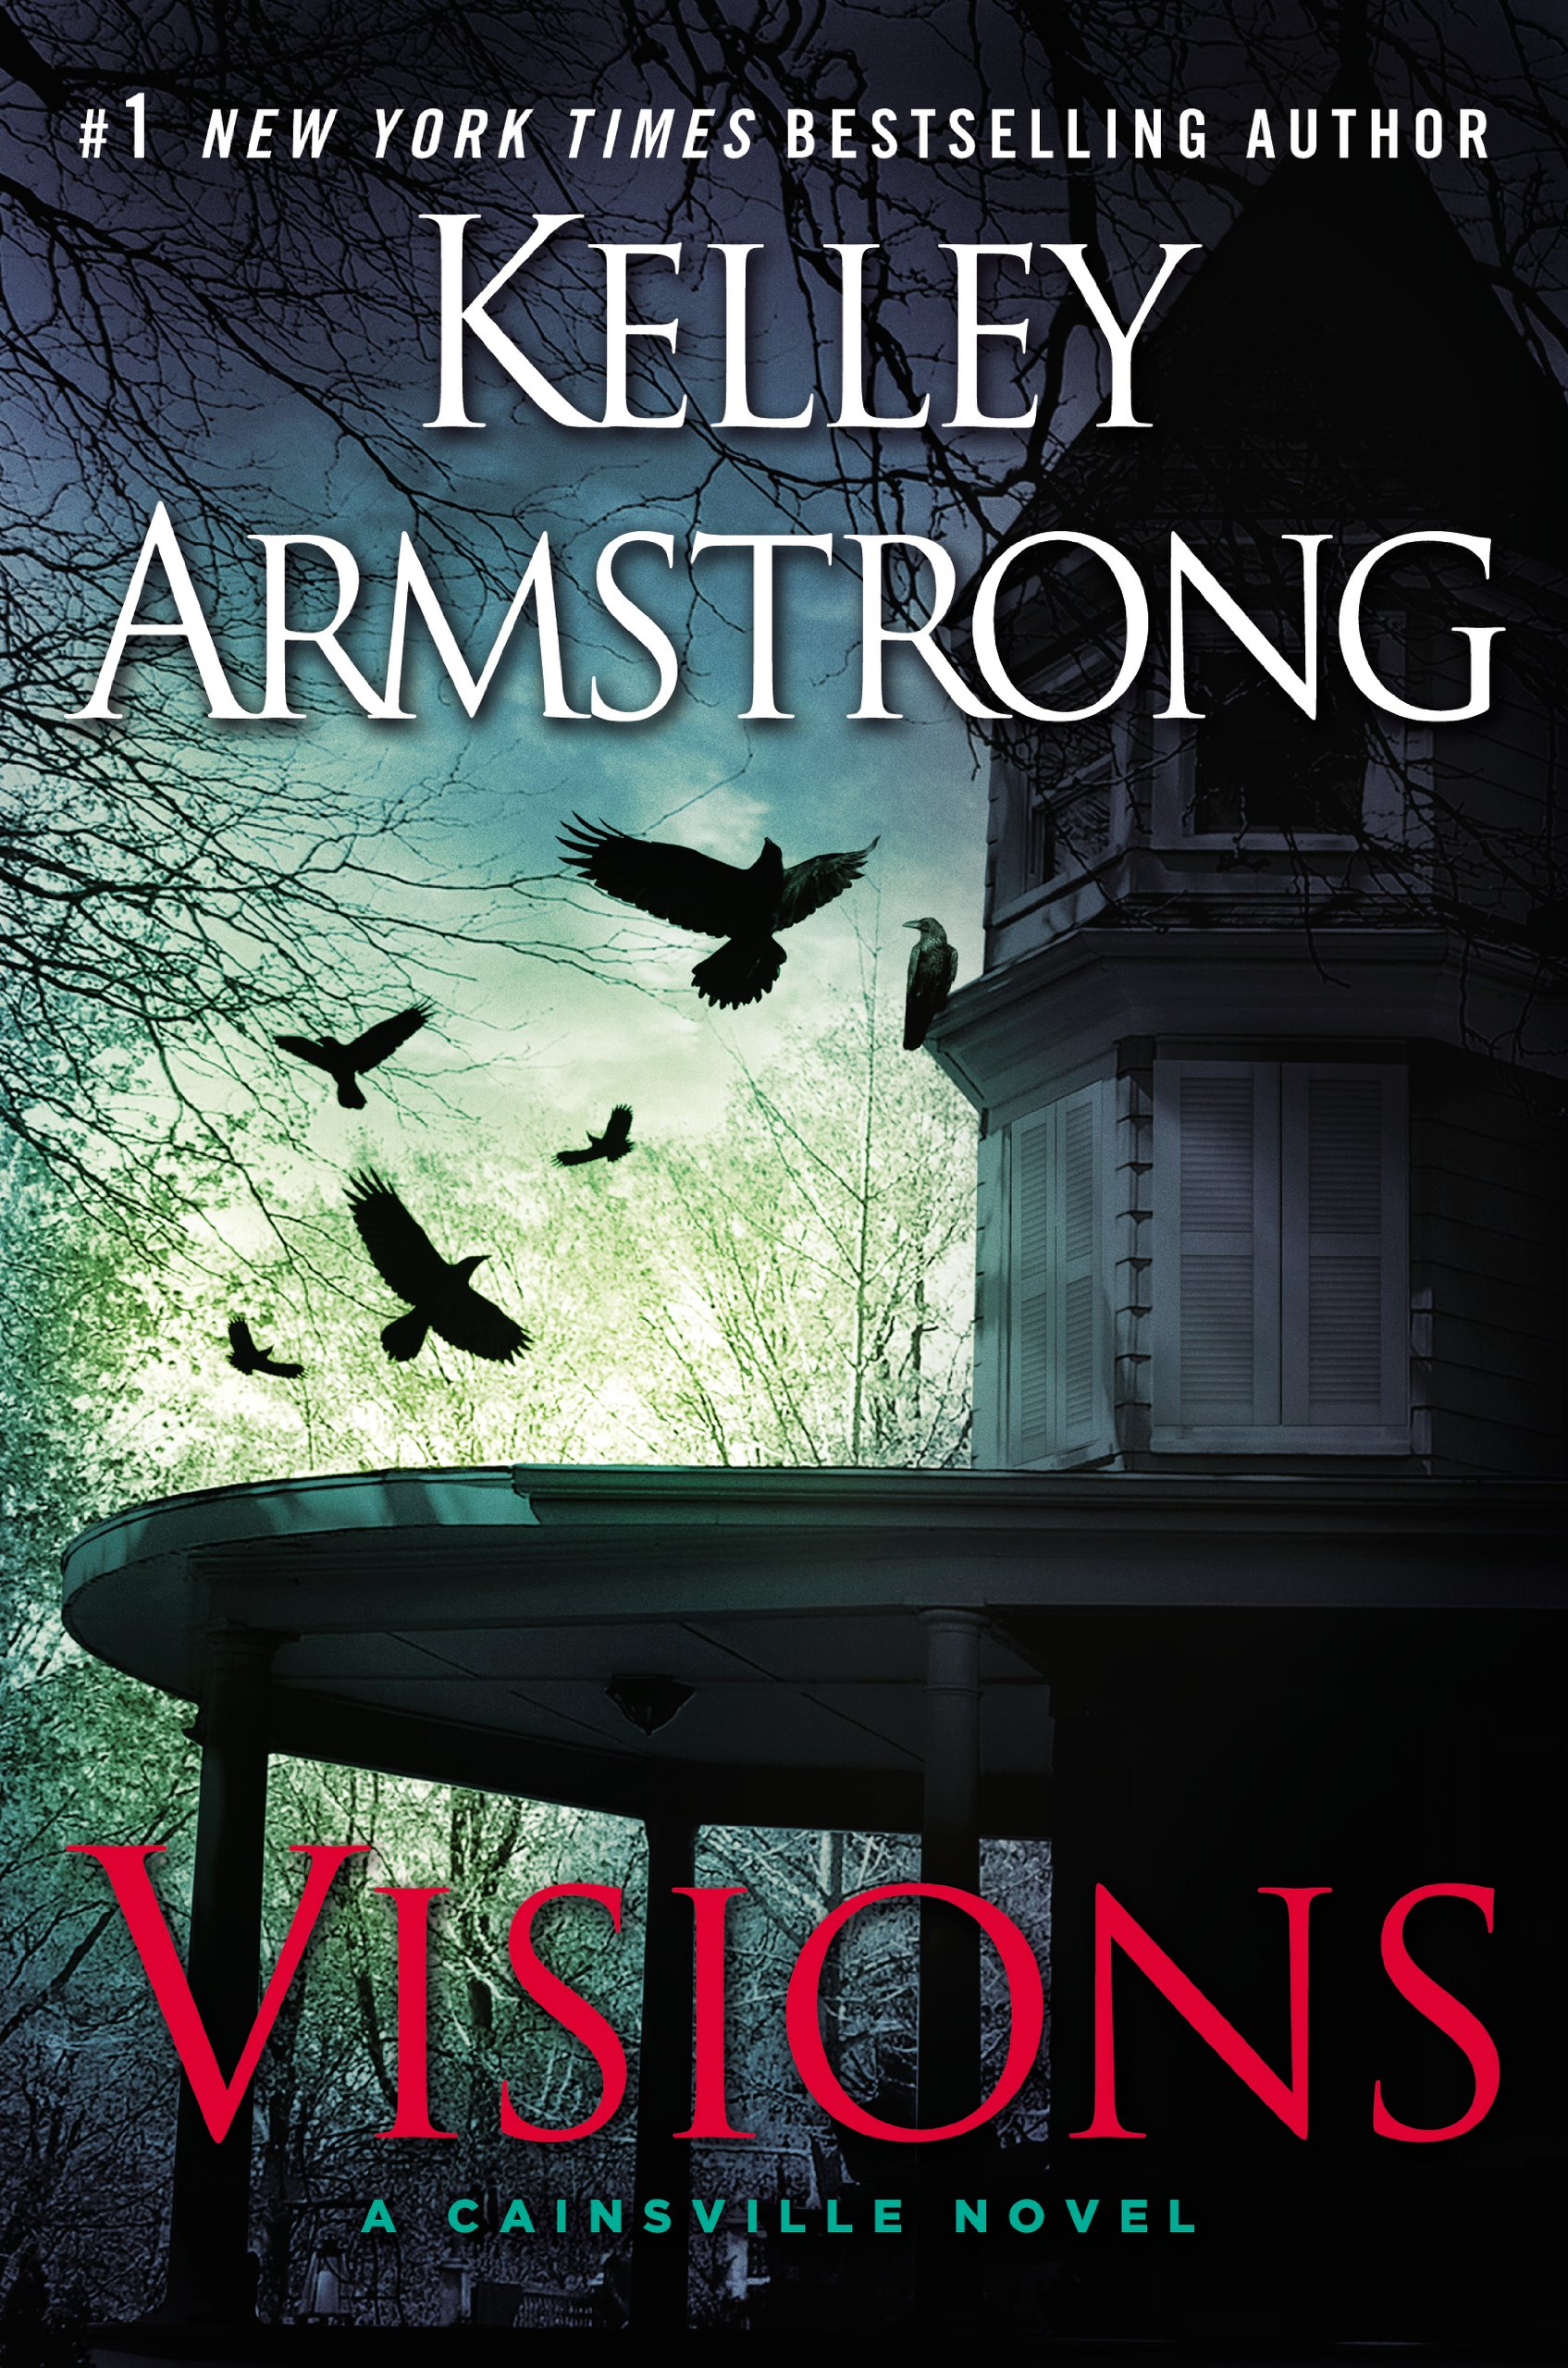 """Kelley Armstrong's cover for """"Visions"""" - Cainsville, book 2."""